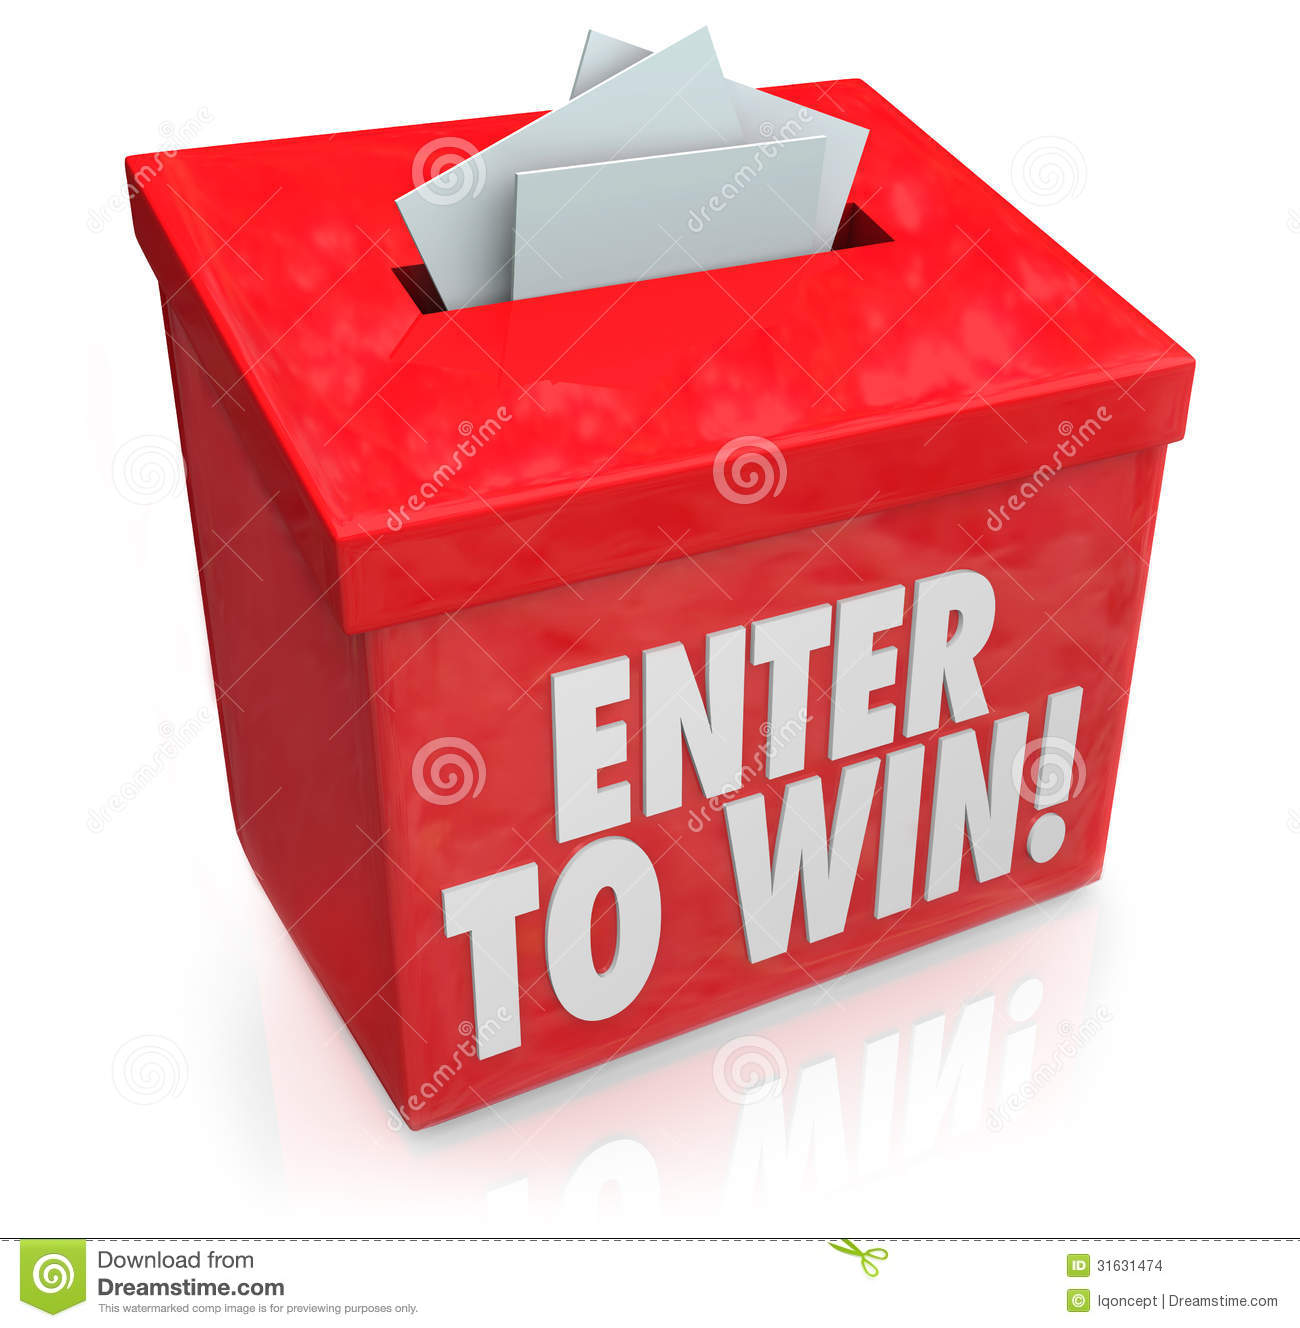 Enter To Win Red Raffle Lottery Box Entry Forms Tickets Stock Illustration - Illustration of luck, betting: 31631474 - 웹